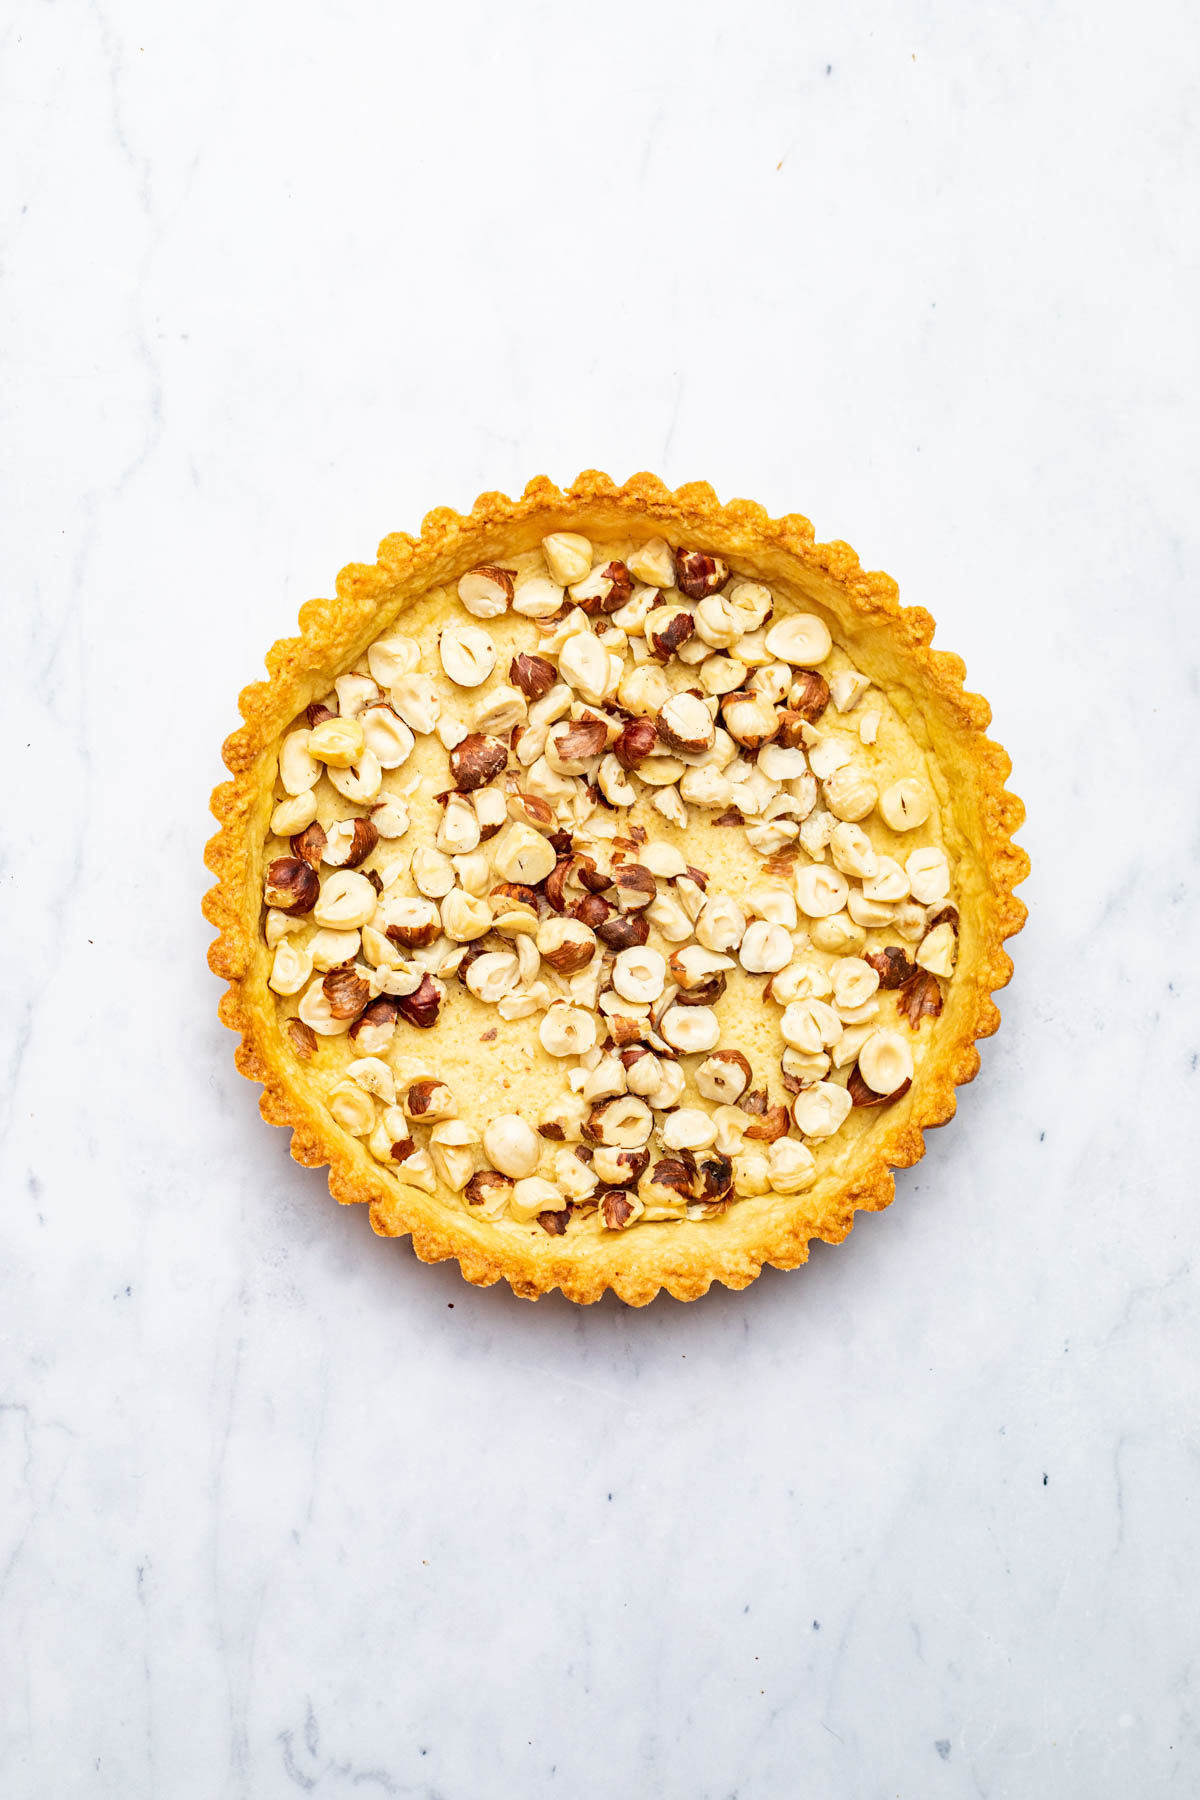 A pastry shell with toasted hazelnuts scattered over the bottom.